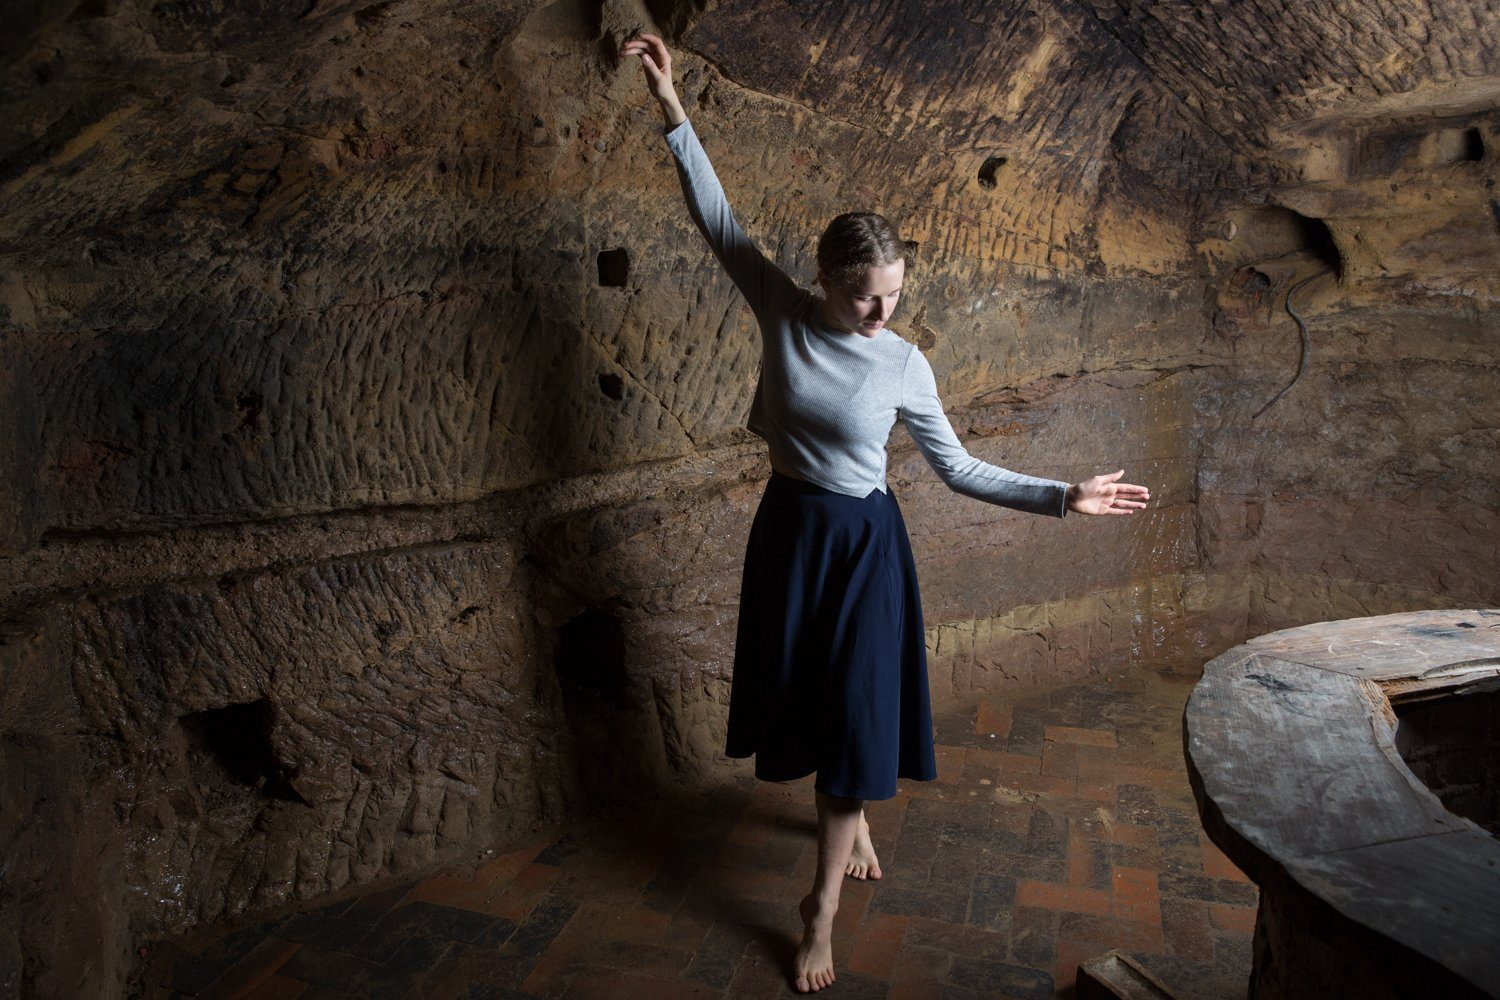 Amy Harris with her arms outstretched, dancing in the caves of the Maltcross in Nottingham